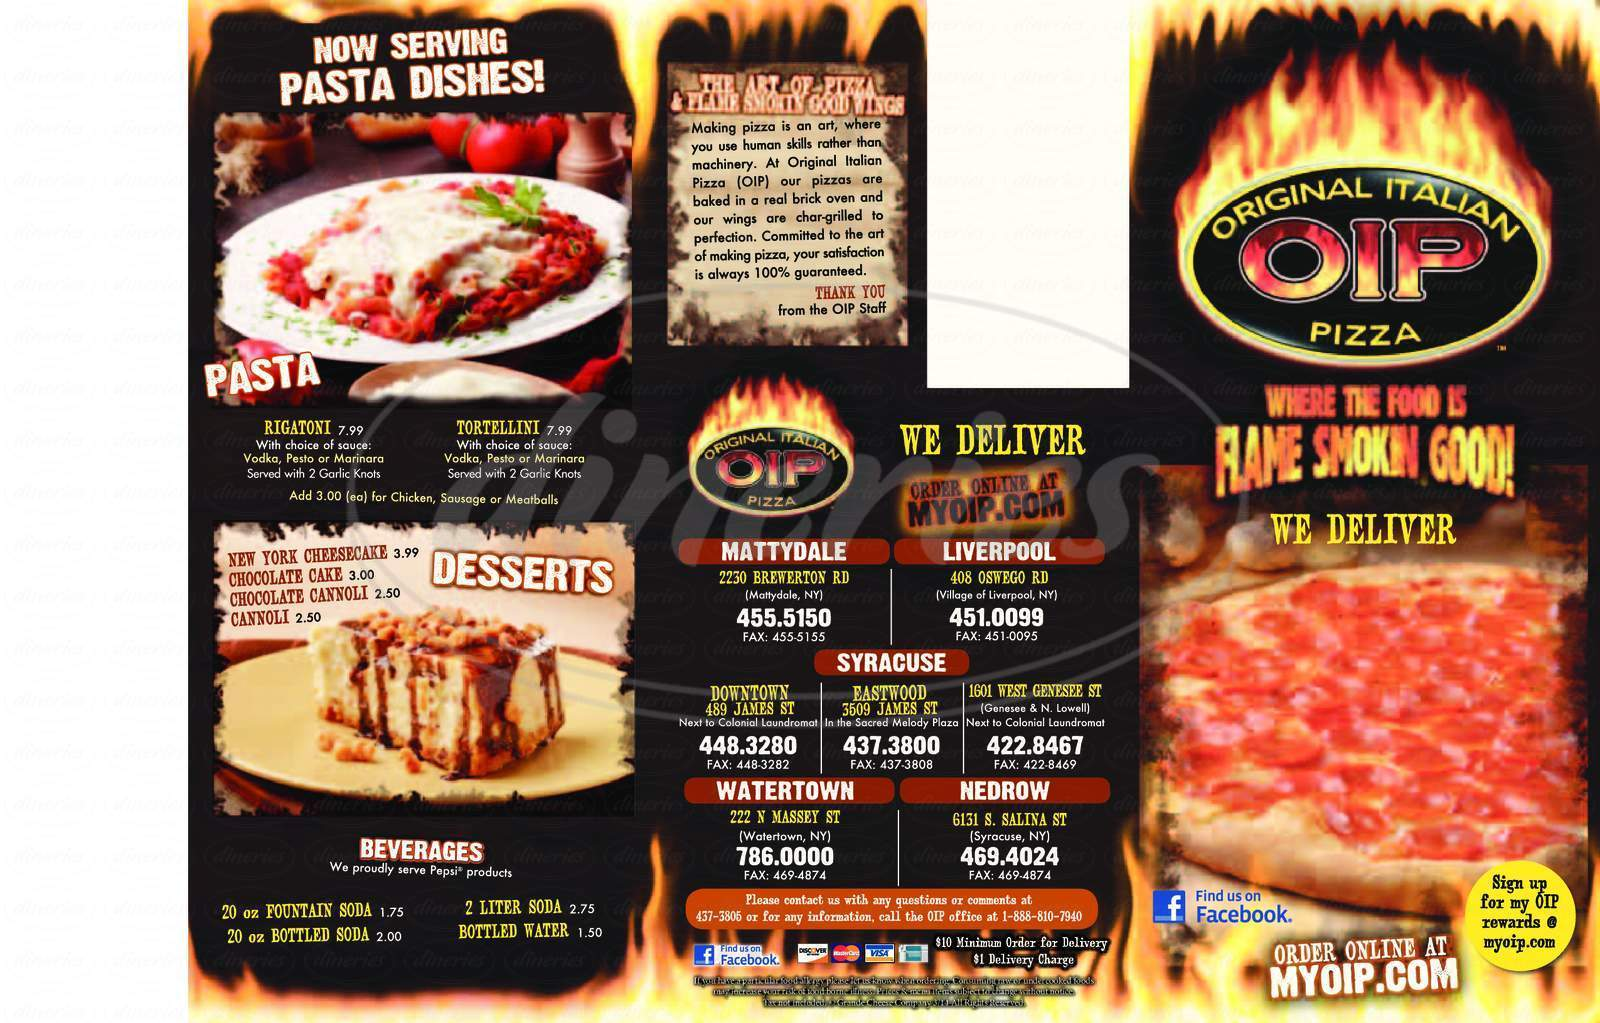 menu for Original Italian Pizza